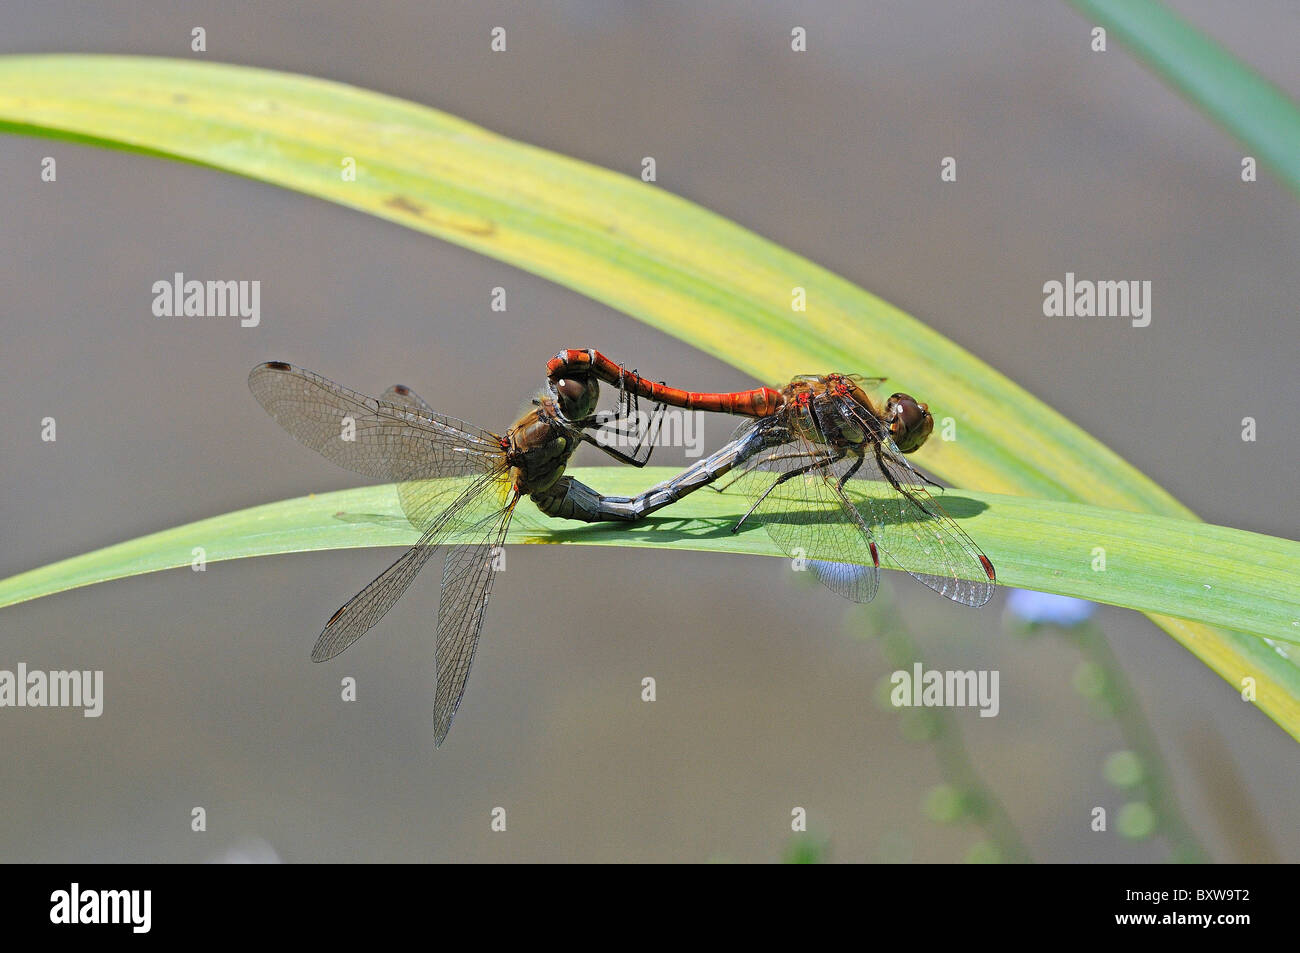 Common Darter Dragonfly (Sympetrum striolatum) pair mating on leaf in wheel position, Oxfordshire, UK - Stock Image